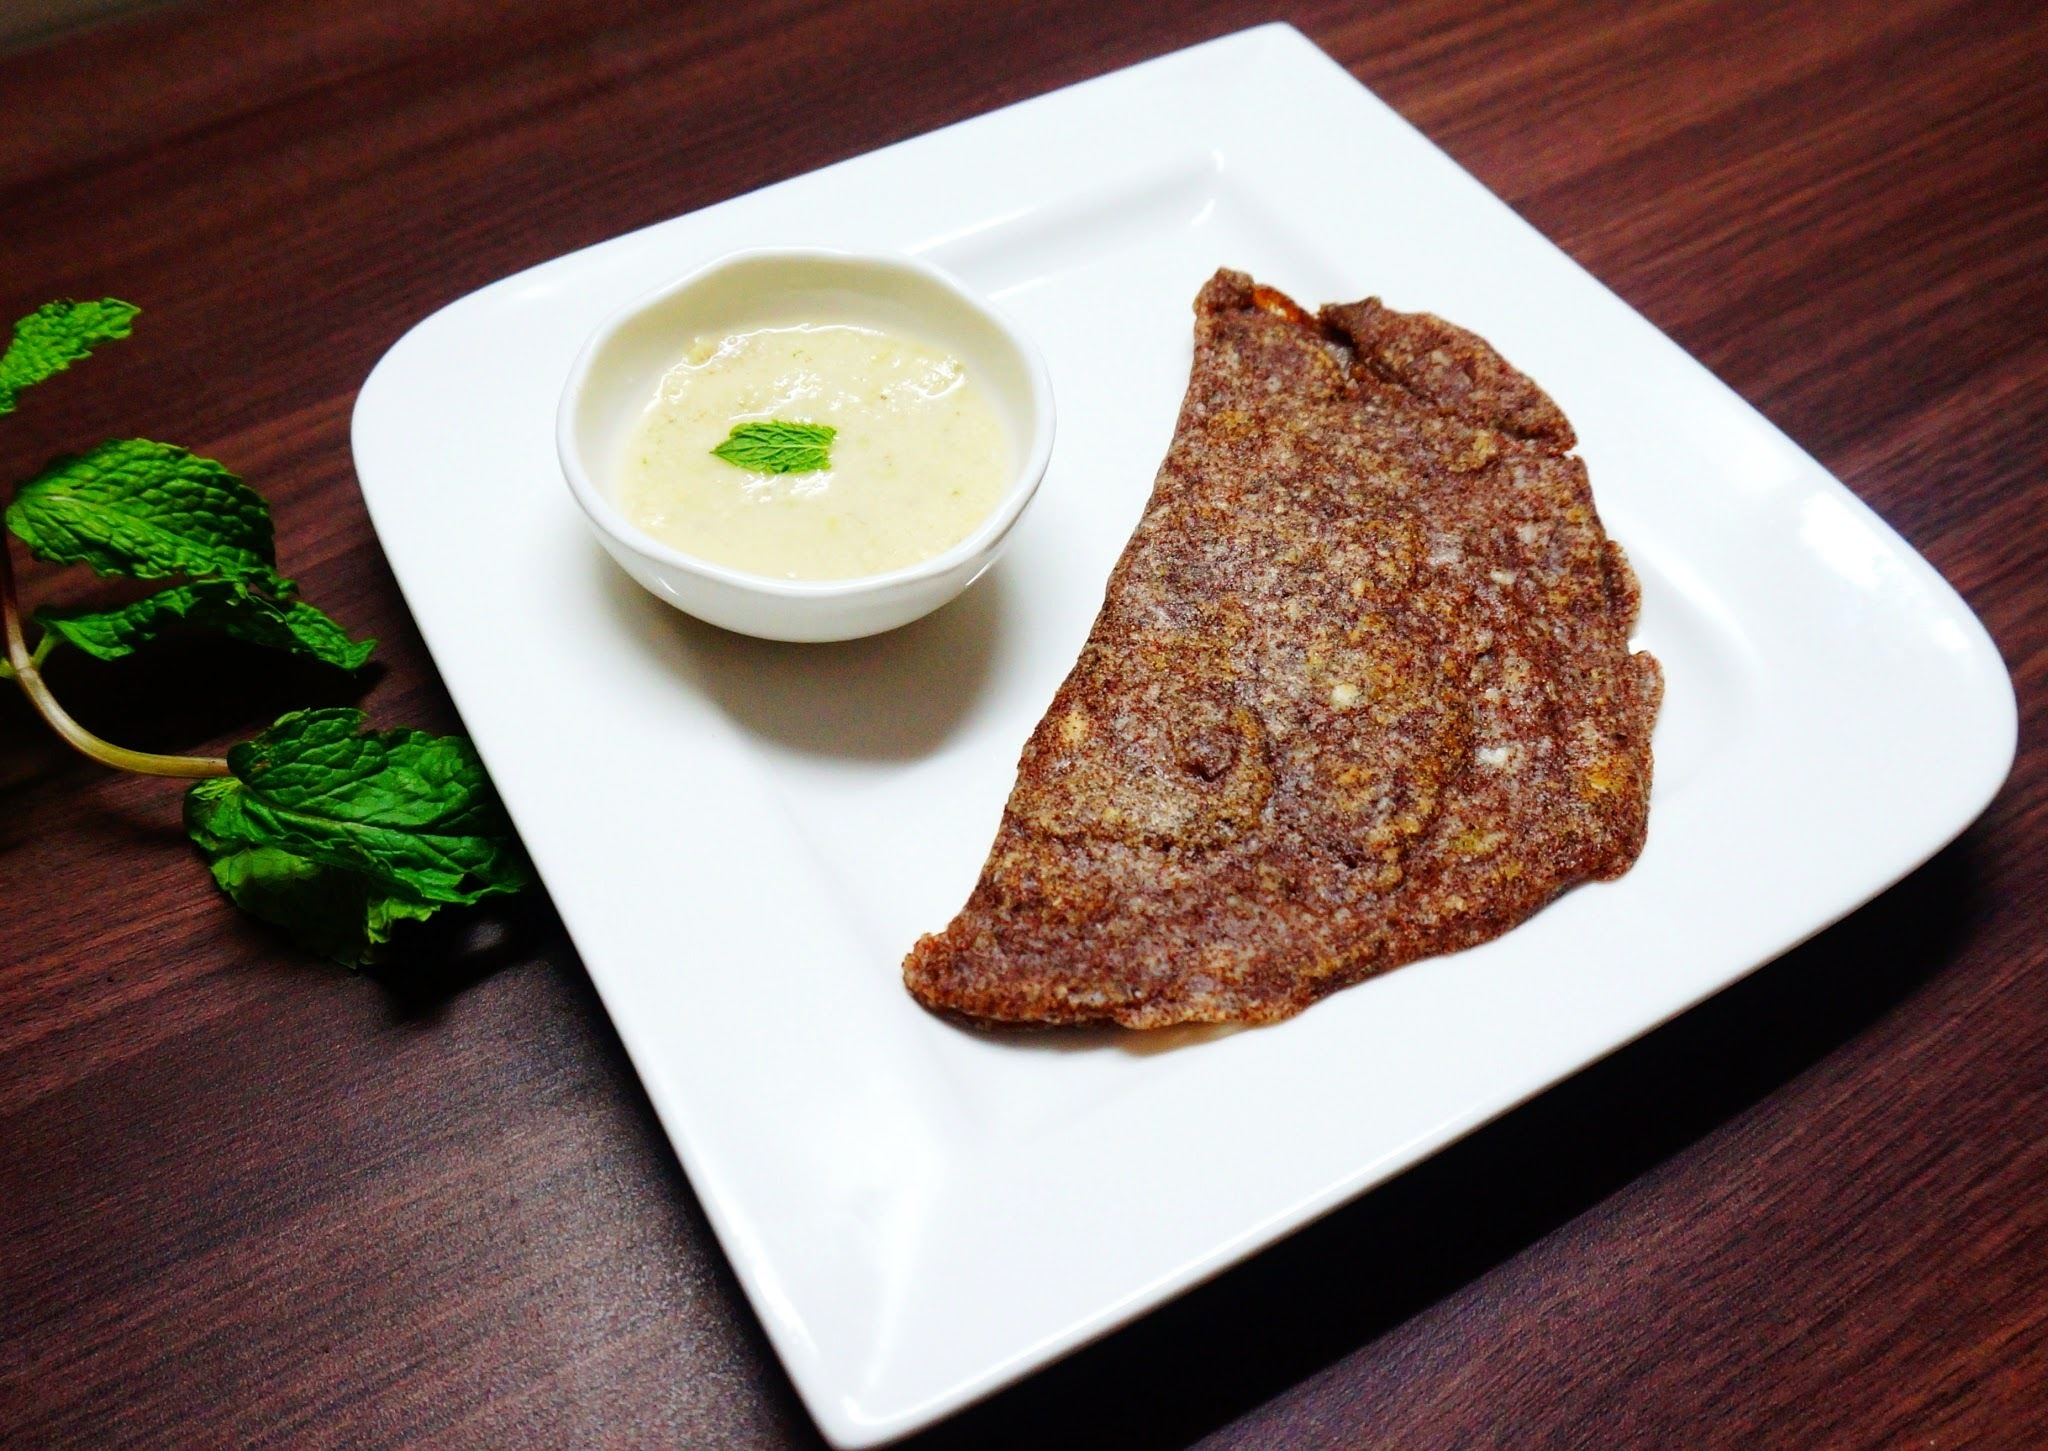 Recipe of Ragi Dosa